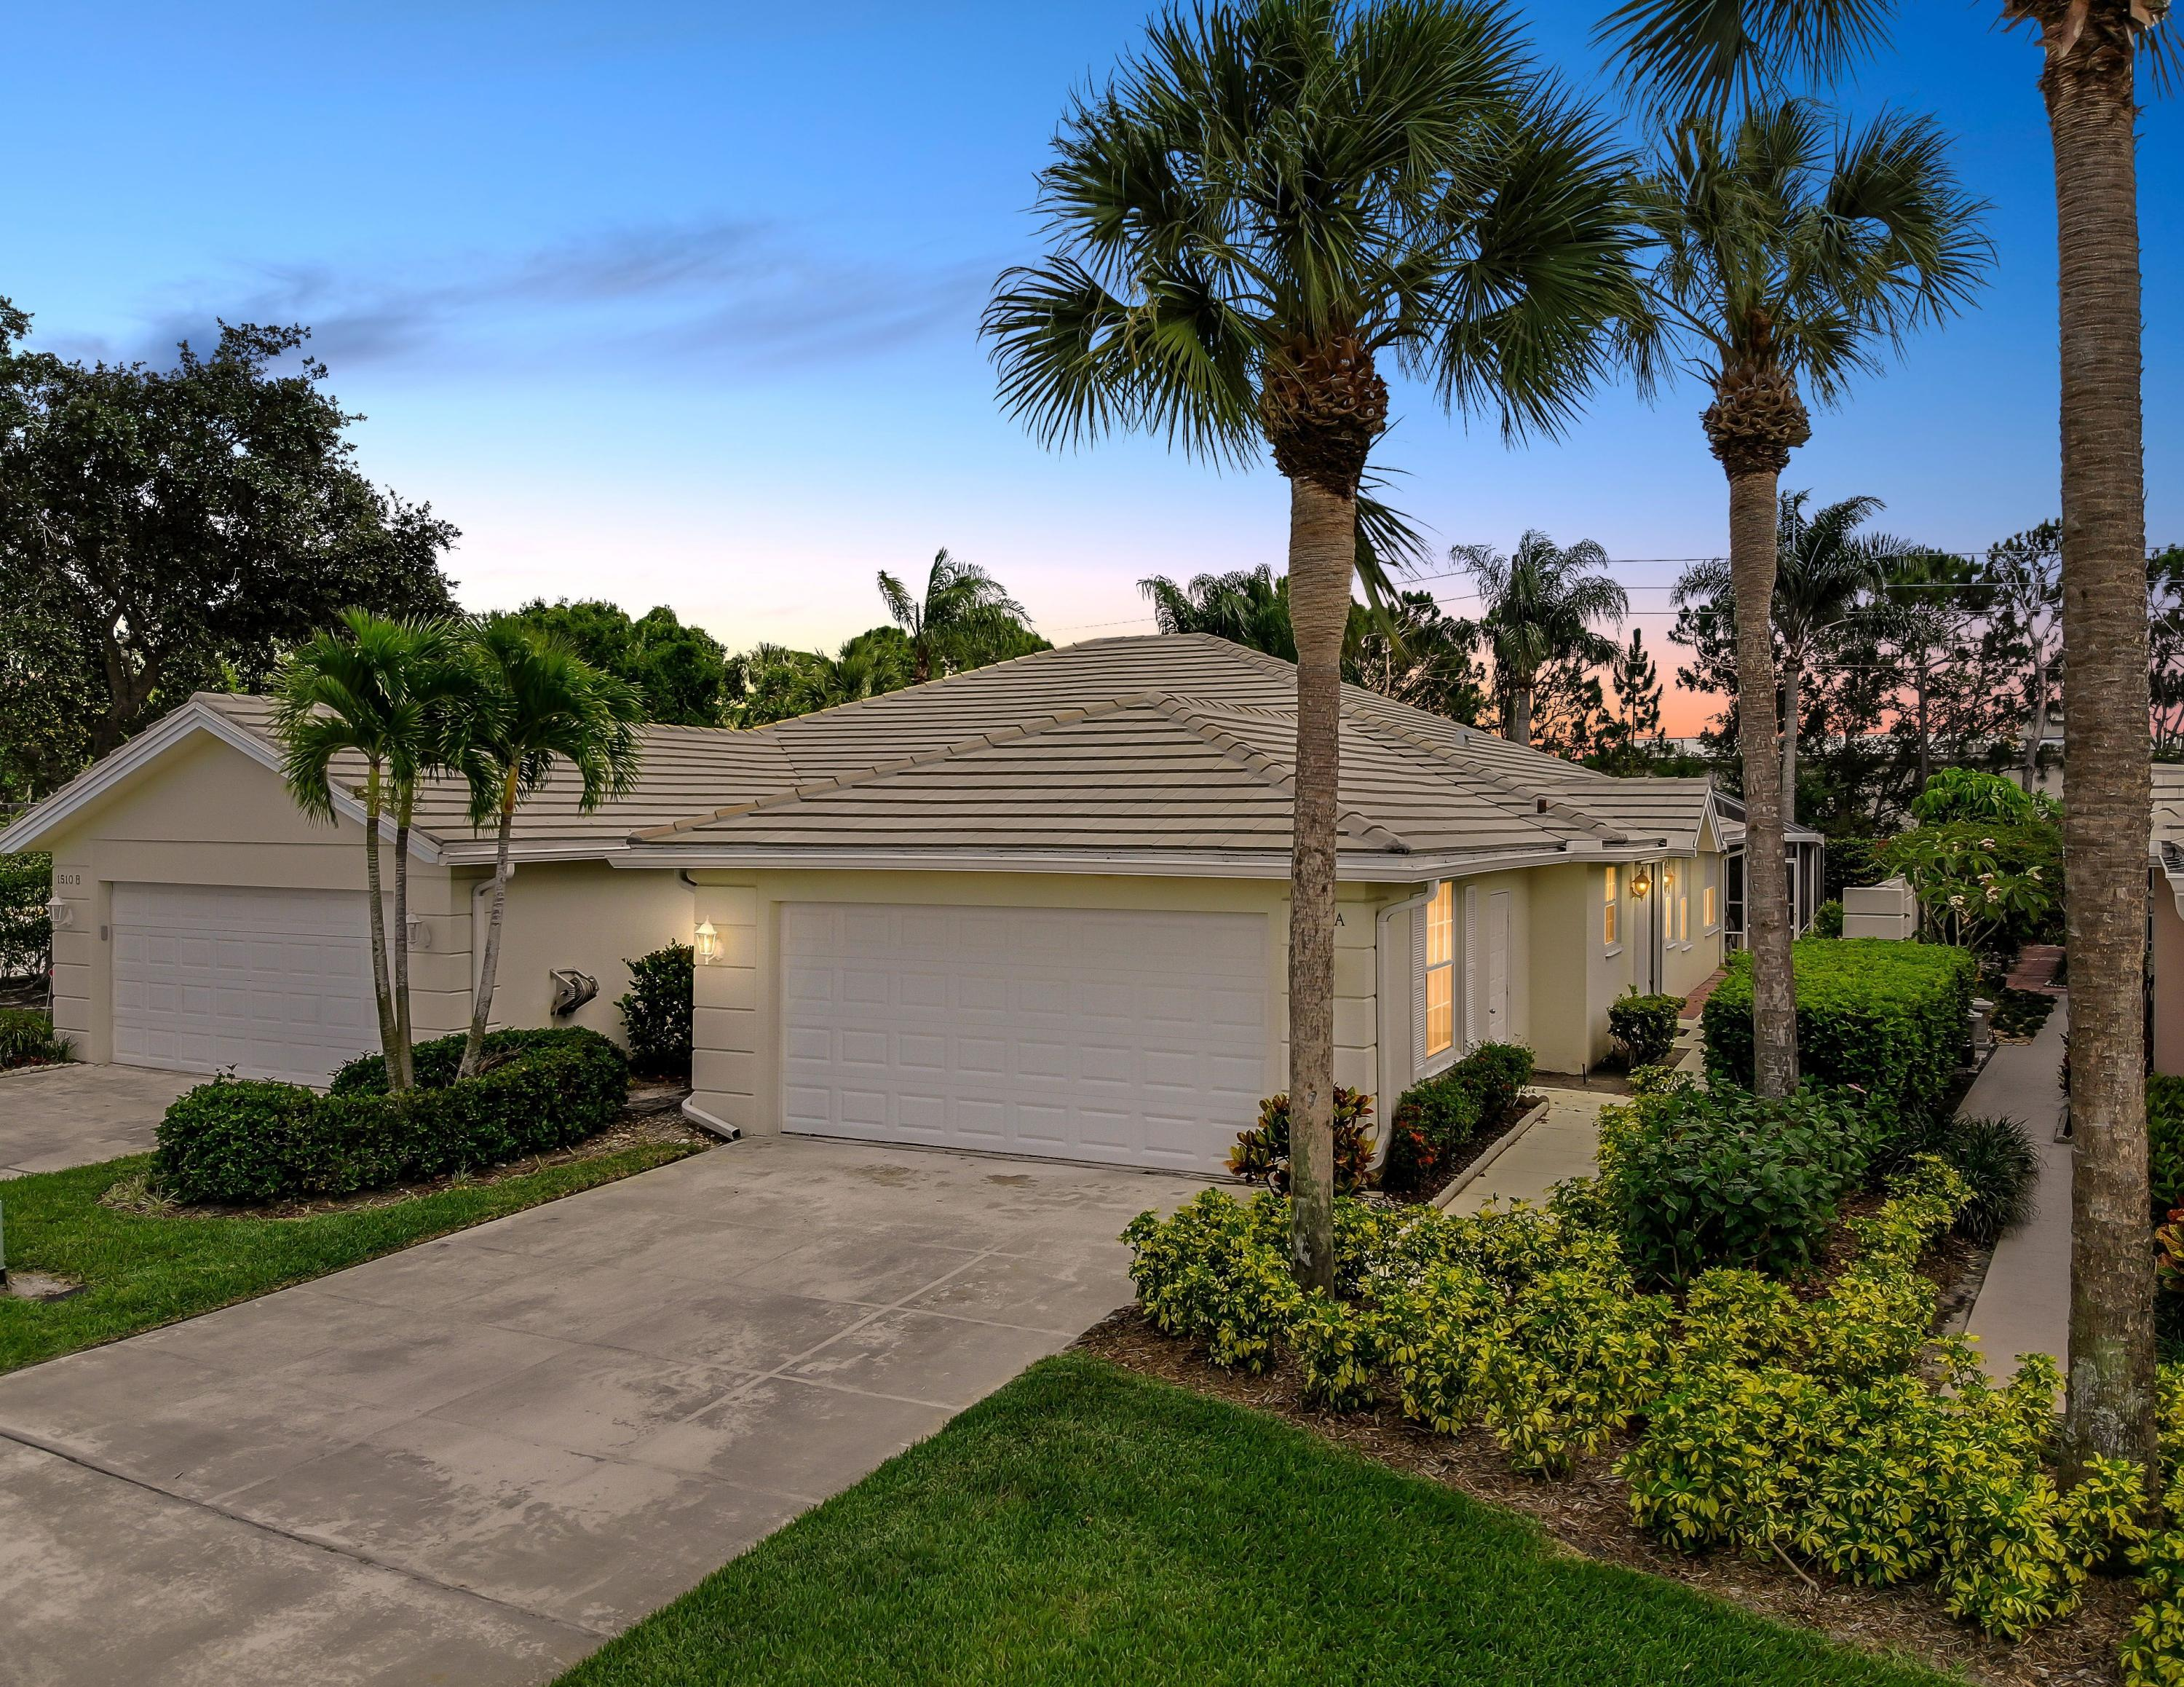 LAKES AT ST LUCIE WEST REAL ESTATE